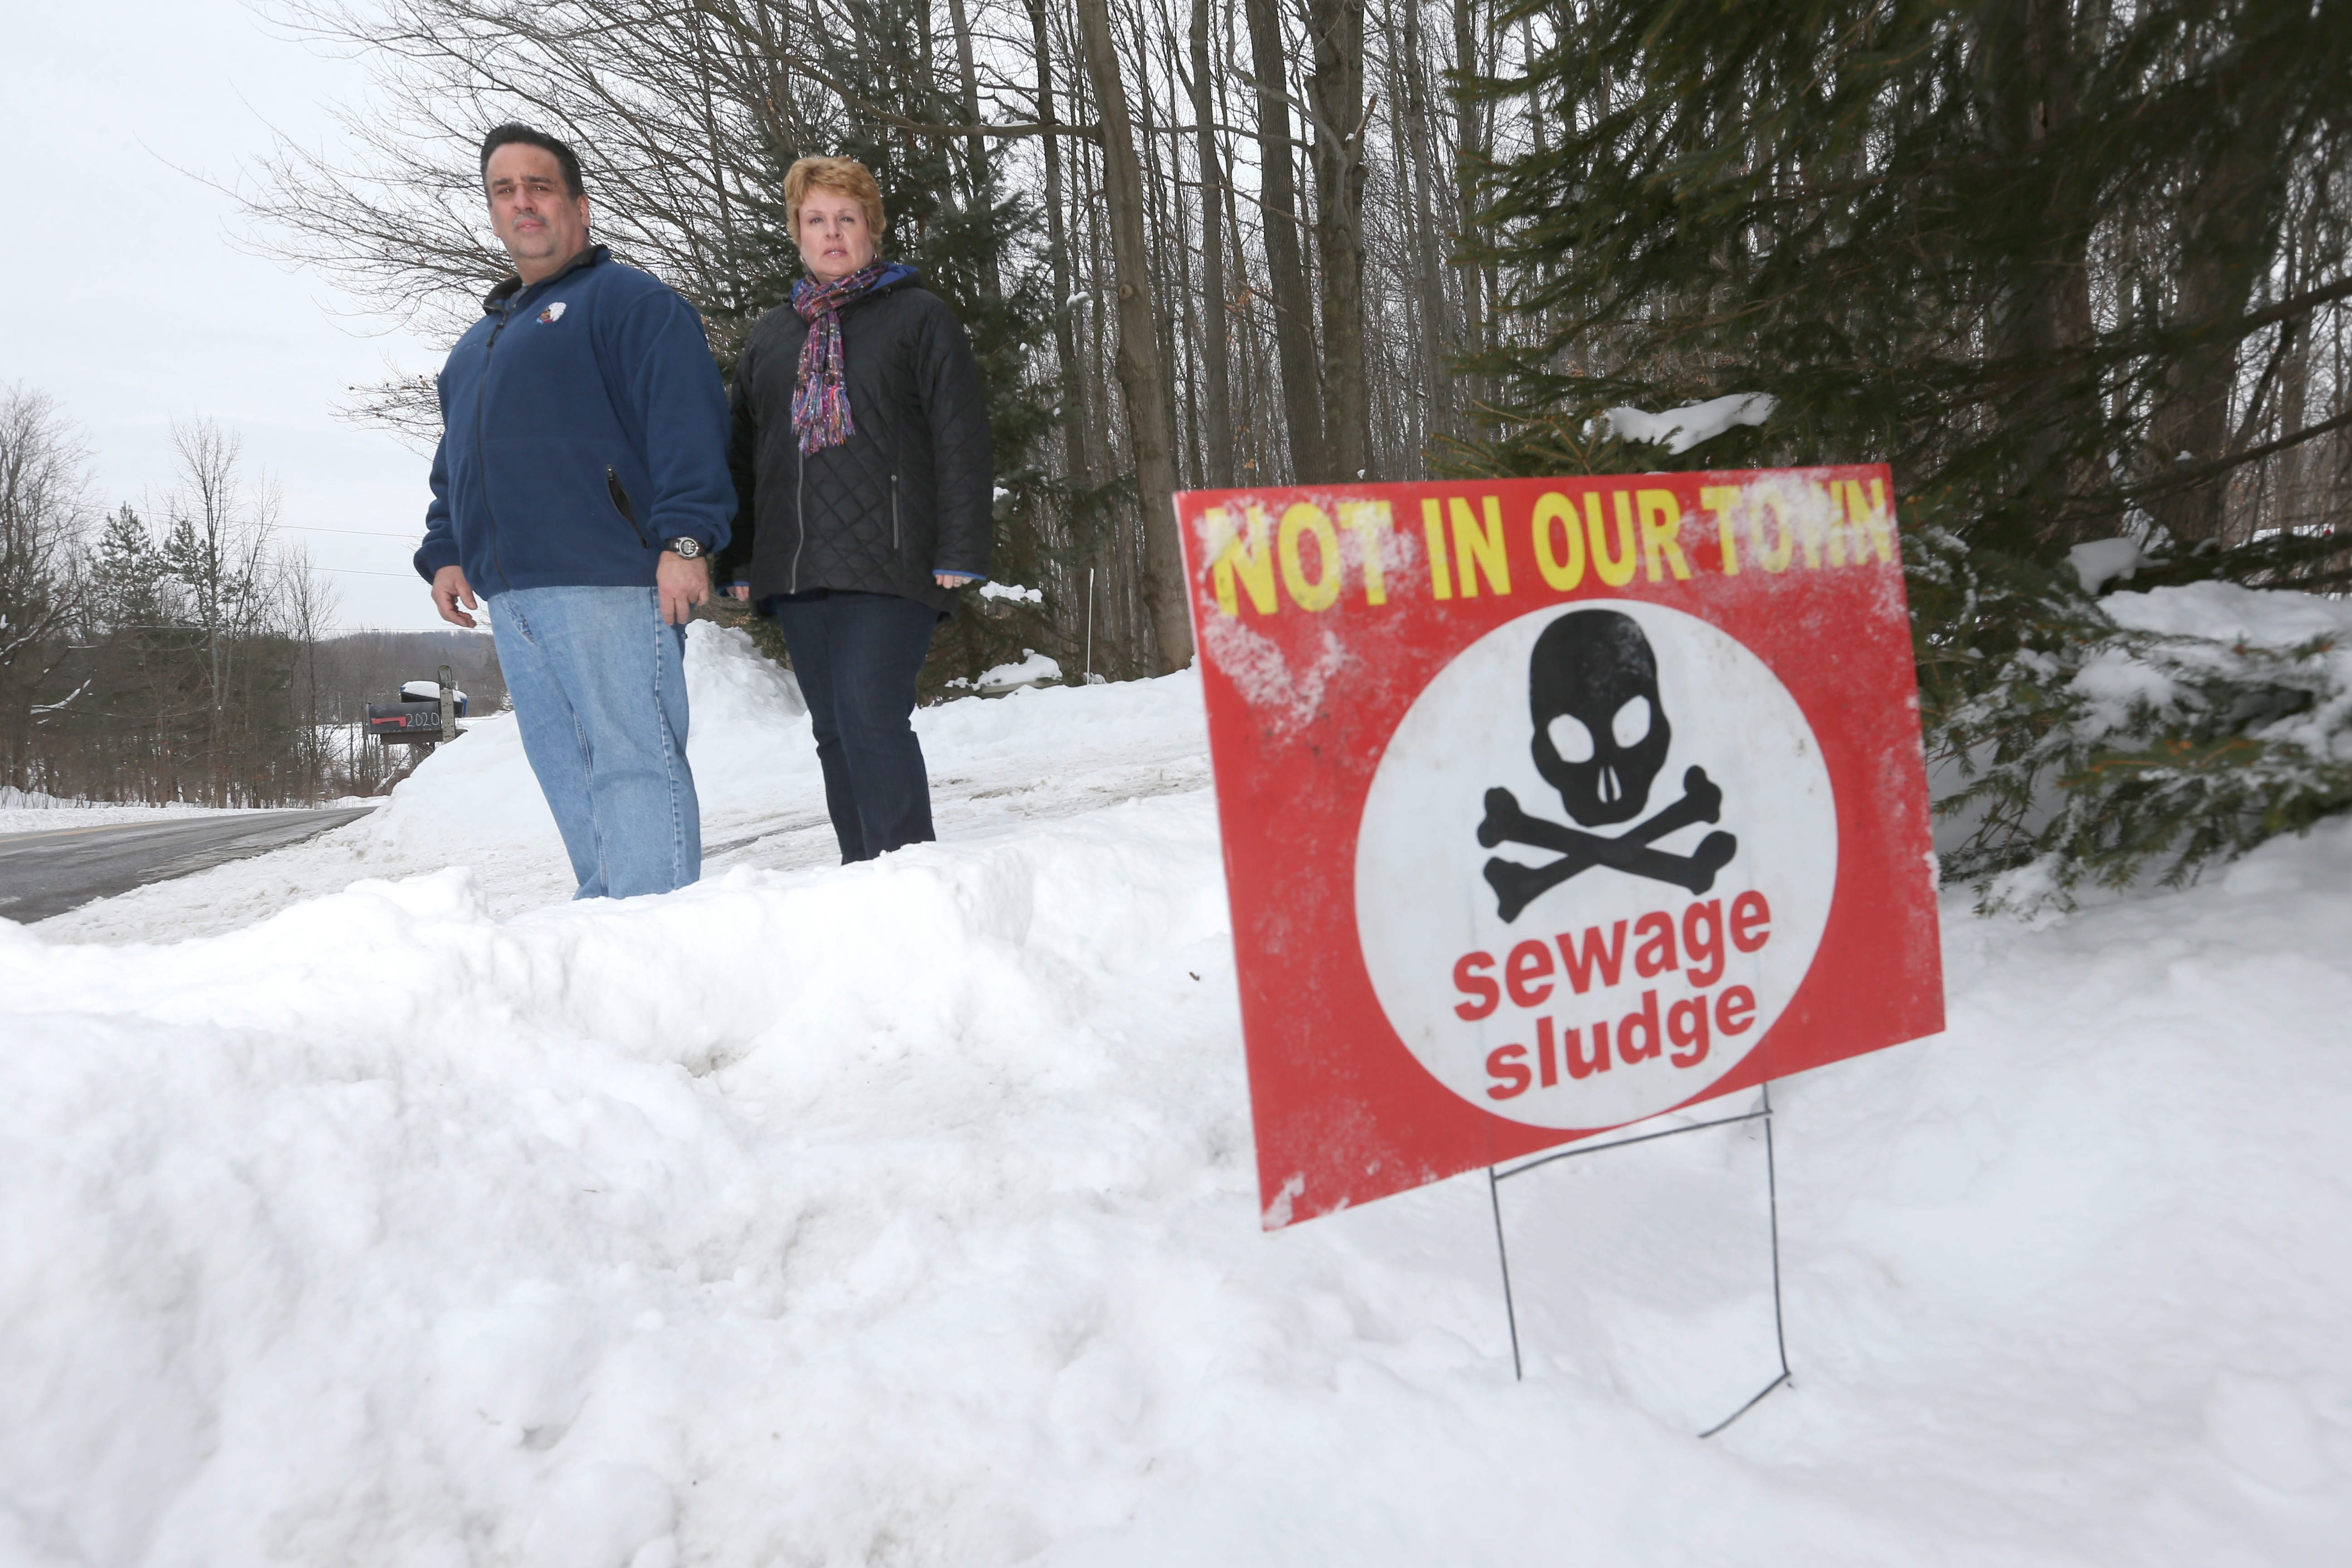 Jeff and Sue Keenan have joined in with the protest of a proposed sewer sludge tank they believe is too close to their Marilla home.